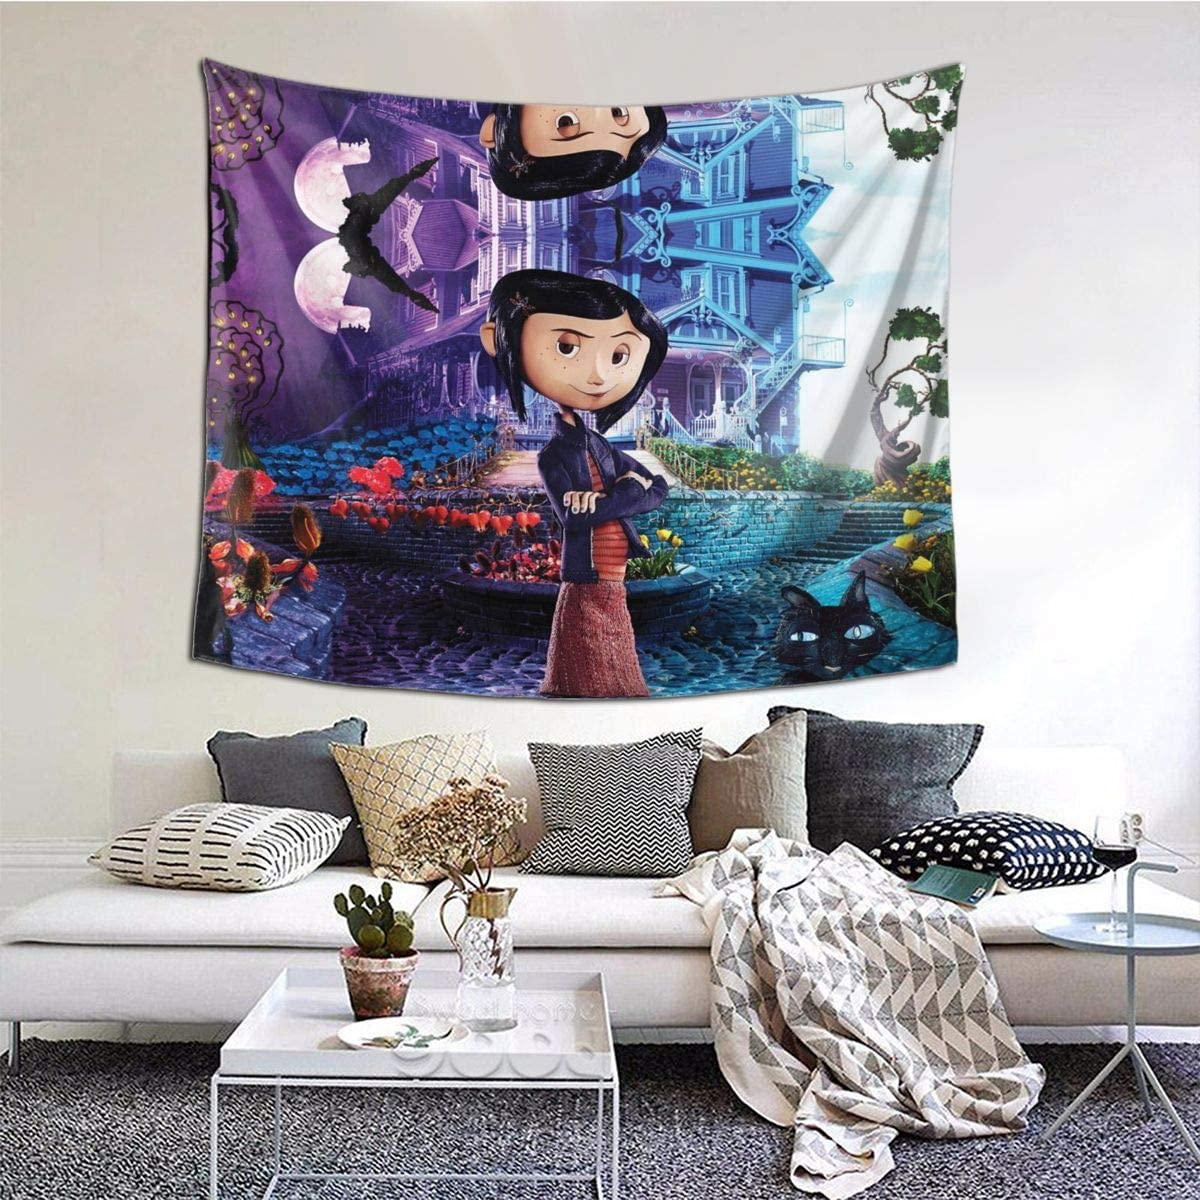 Amazon Com Coraline Wide Wall Tapestry Wall Hanging Bedding Tapestry 60x51 Inch Home Art Decorations For Living Room Bedroom Dorm Decor Home Kitchen